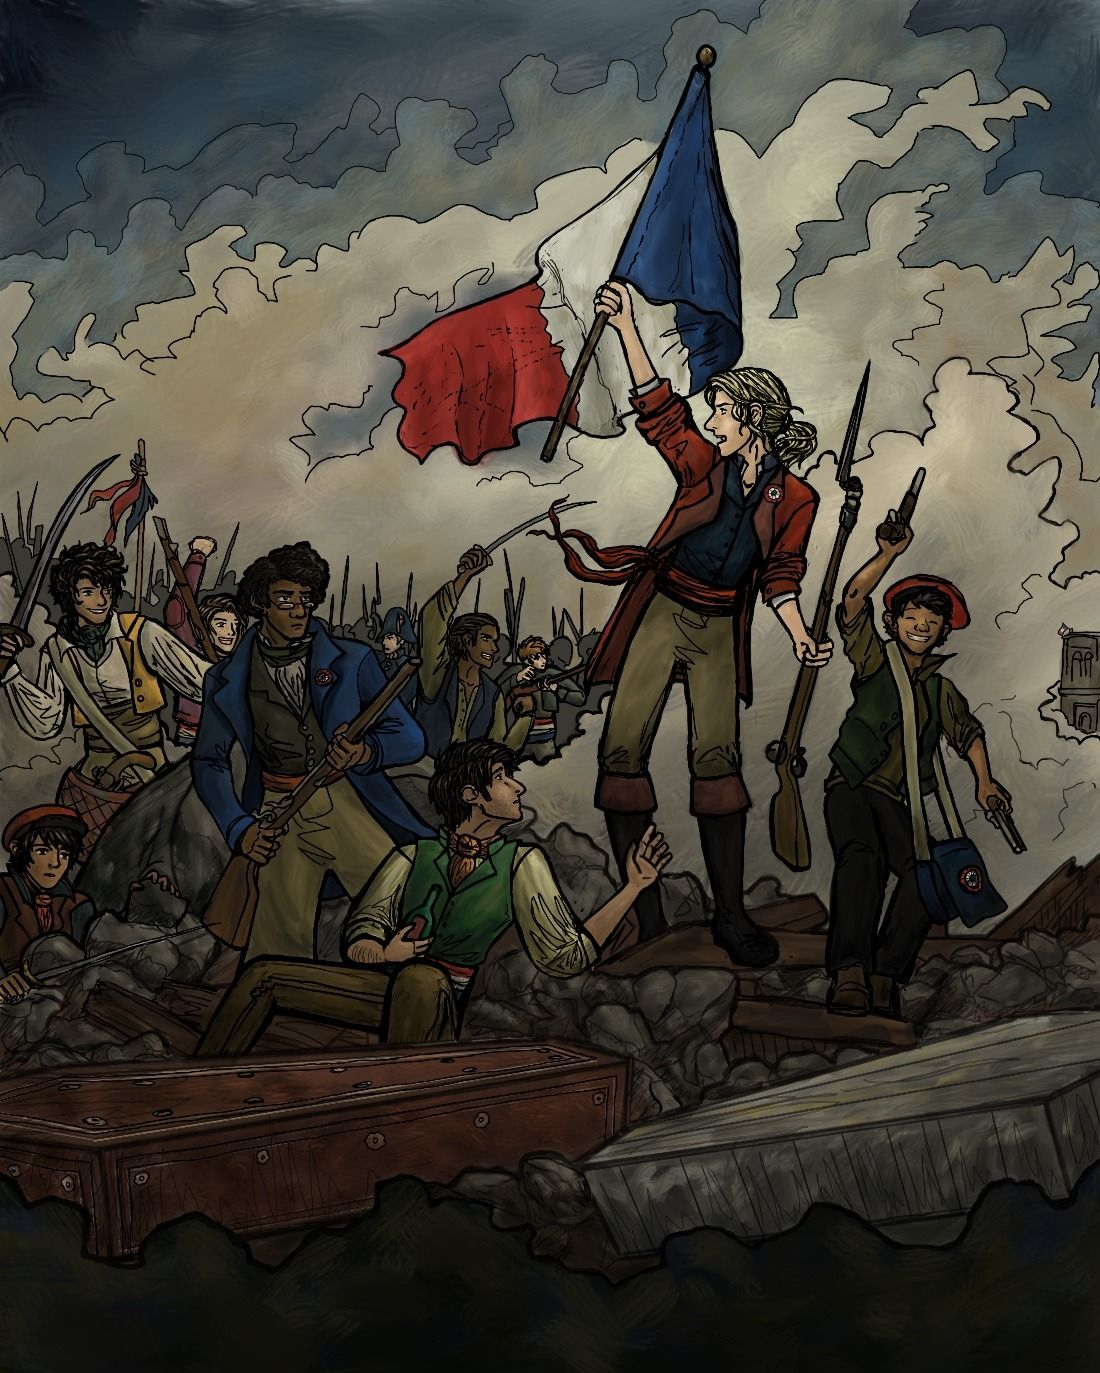 Liberty Leading Les Miserables Based On That One Painting By